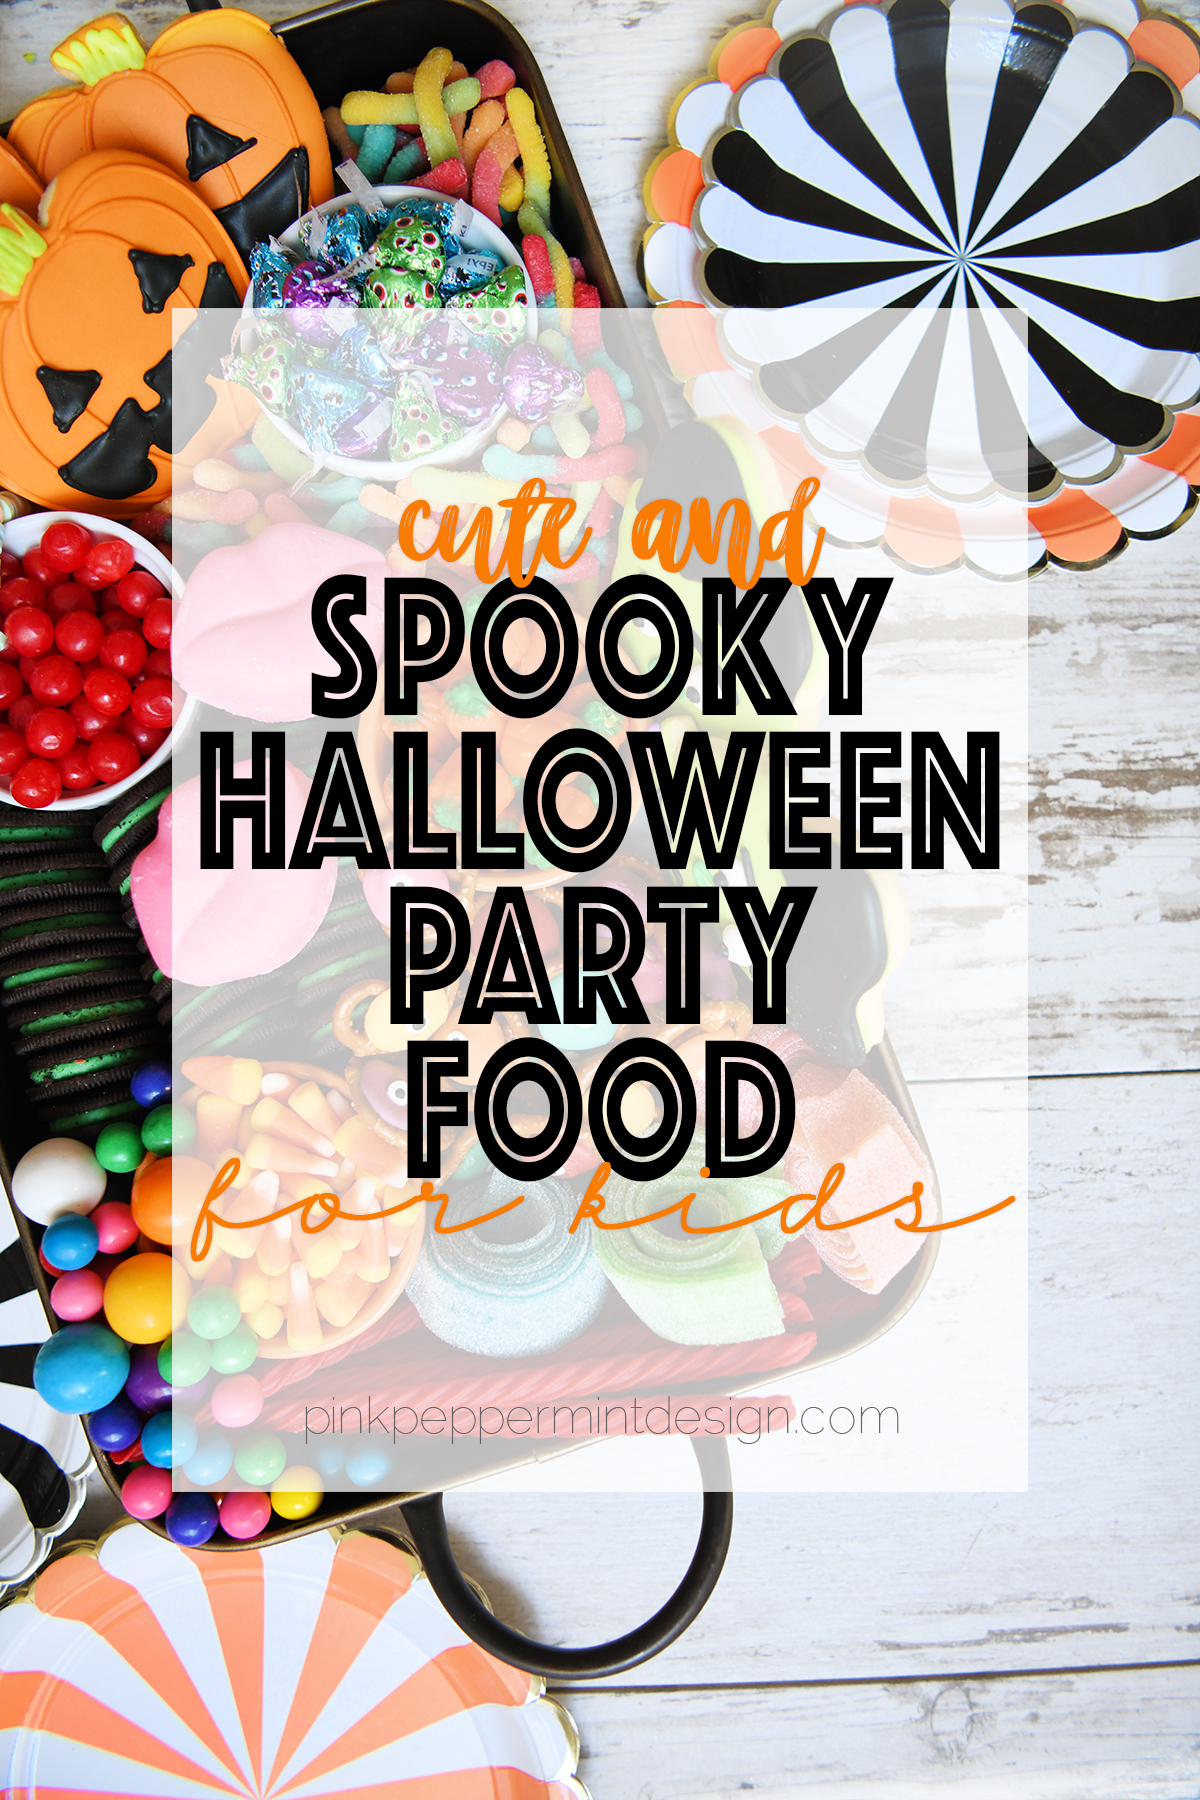 Awesome Spooky Halloween Party Food Idea – Sweets Charcuterie